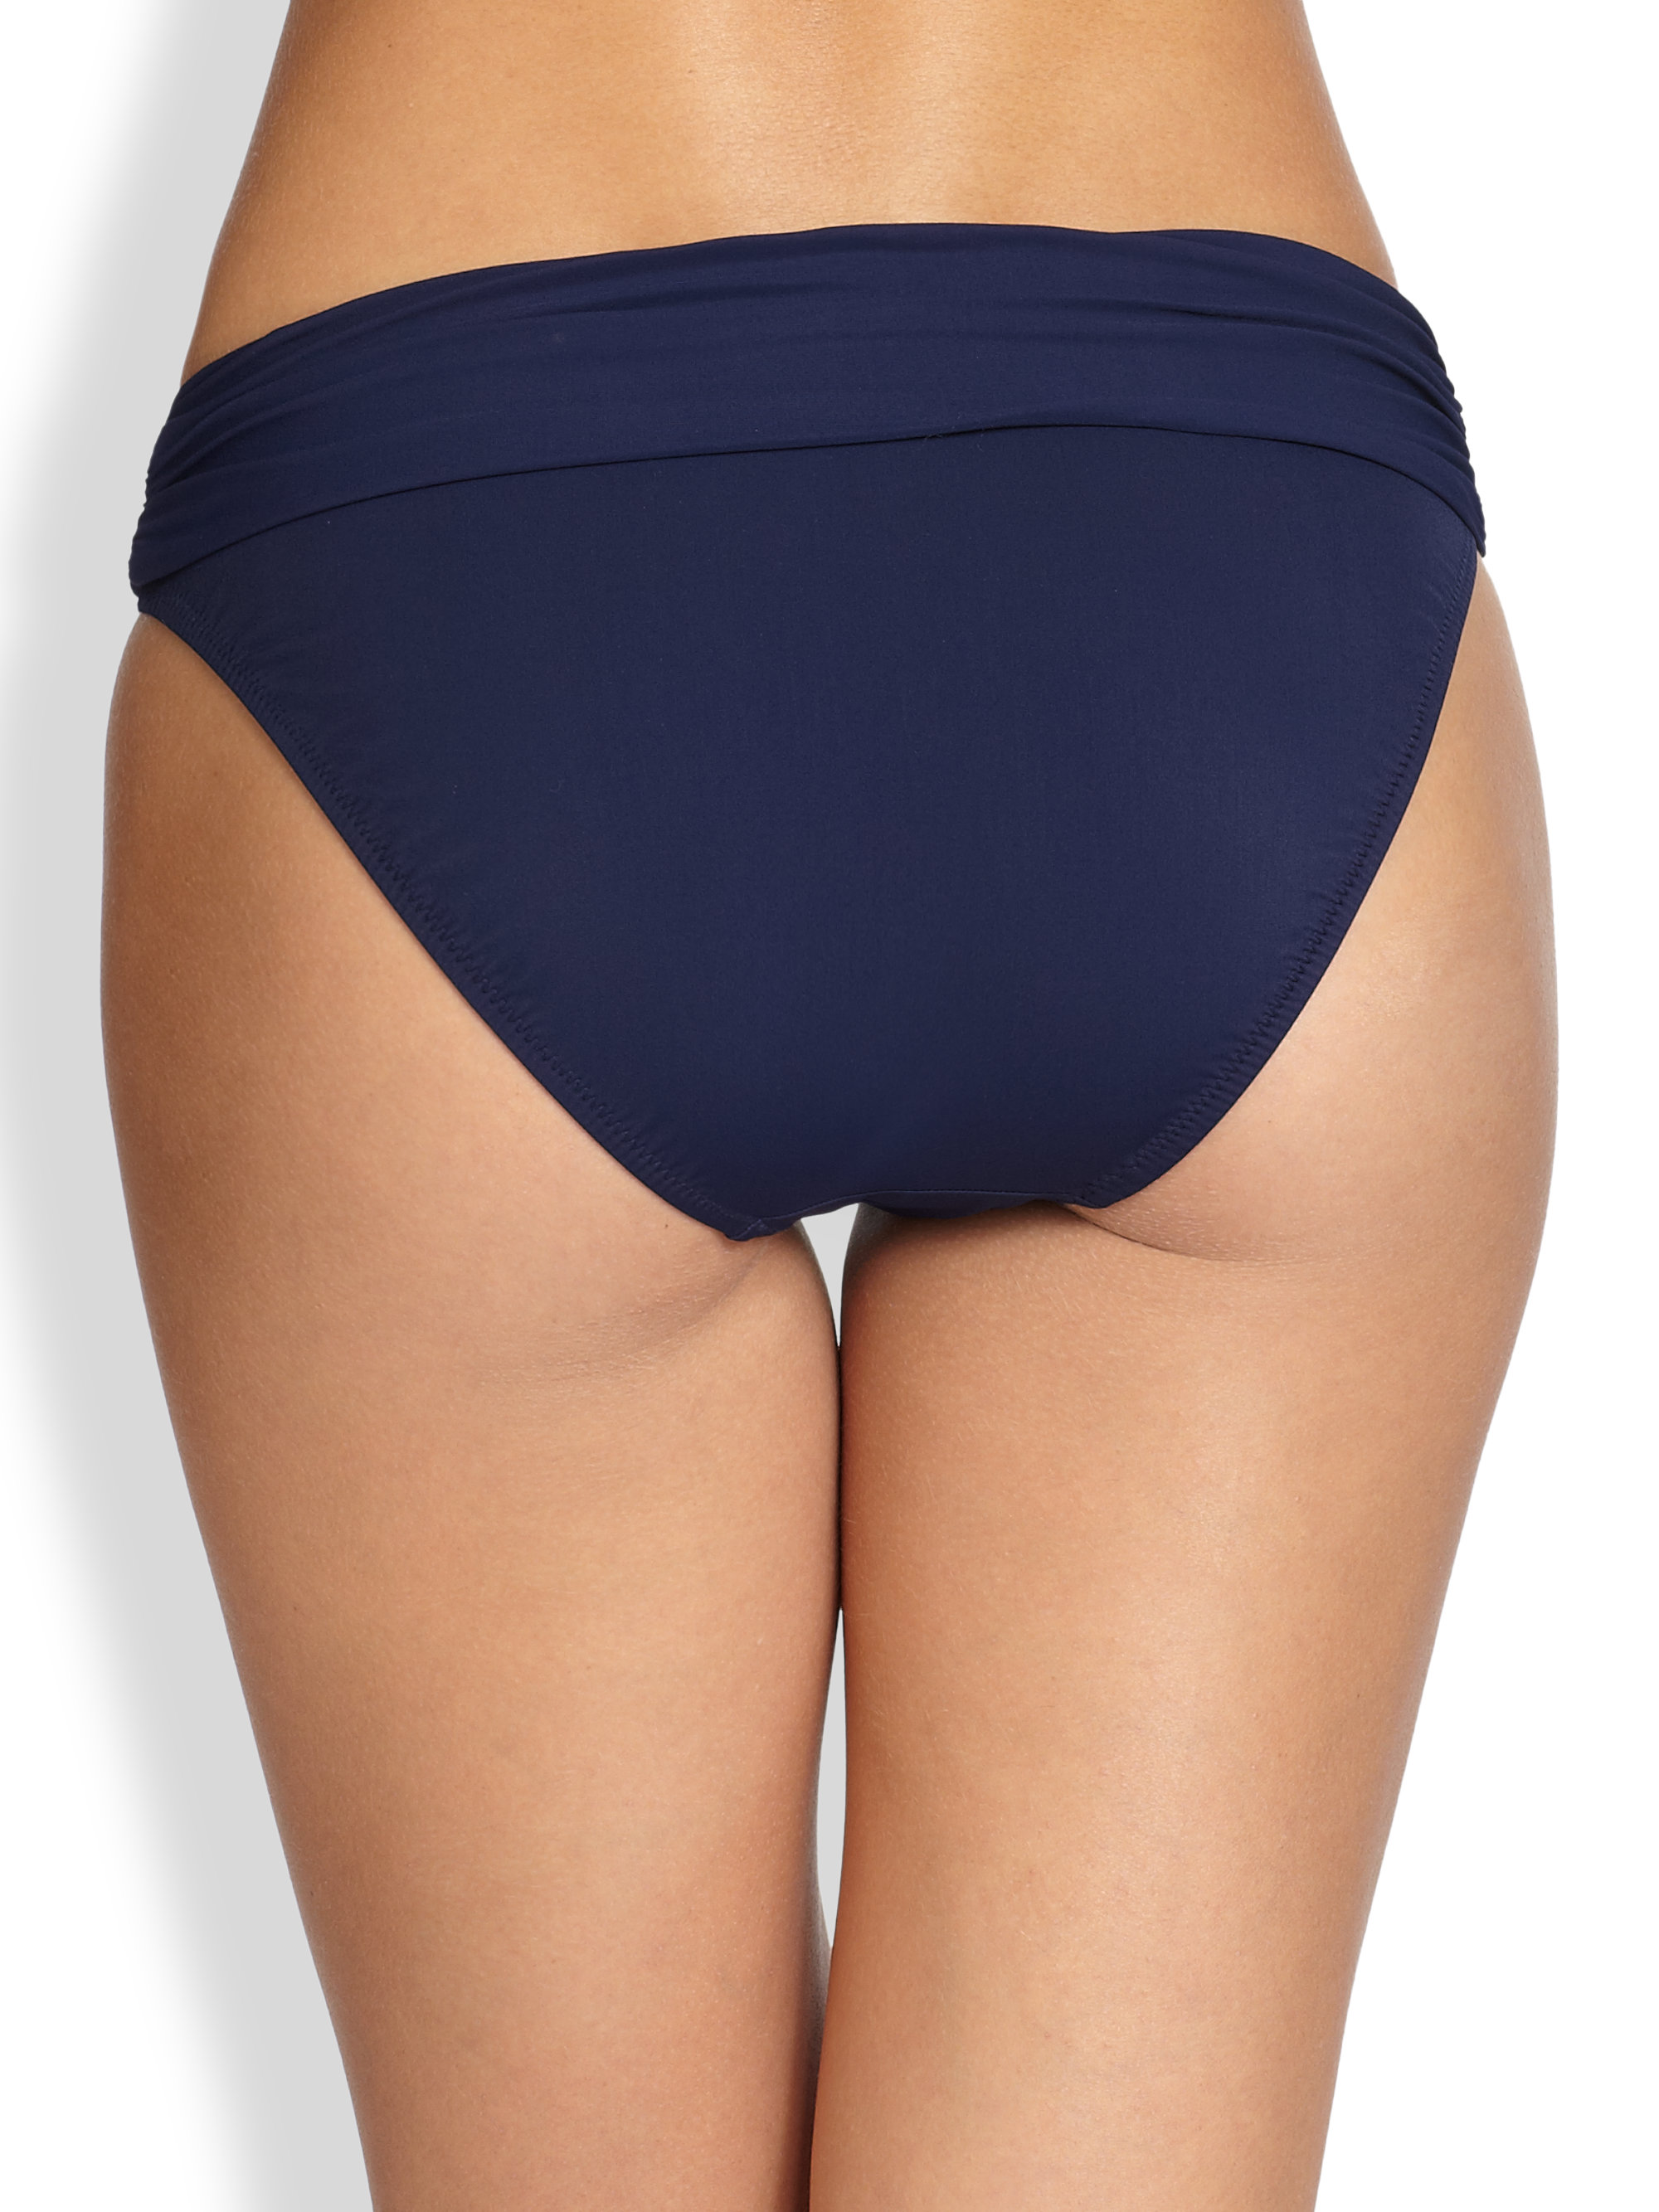 Shop Target for swim bottoms you will love at great low prices. Free shipping and free returns, or free same-day pick-up in store.